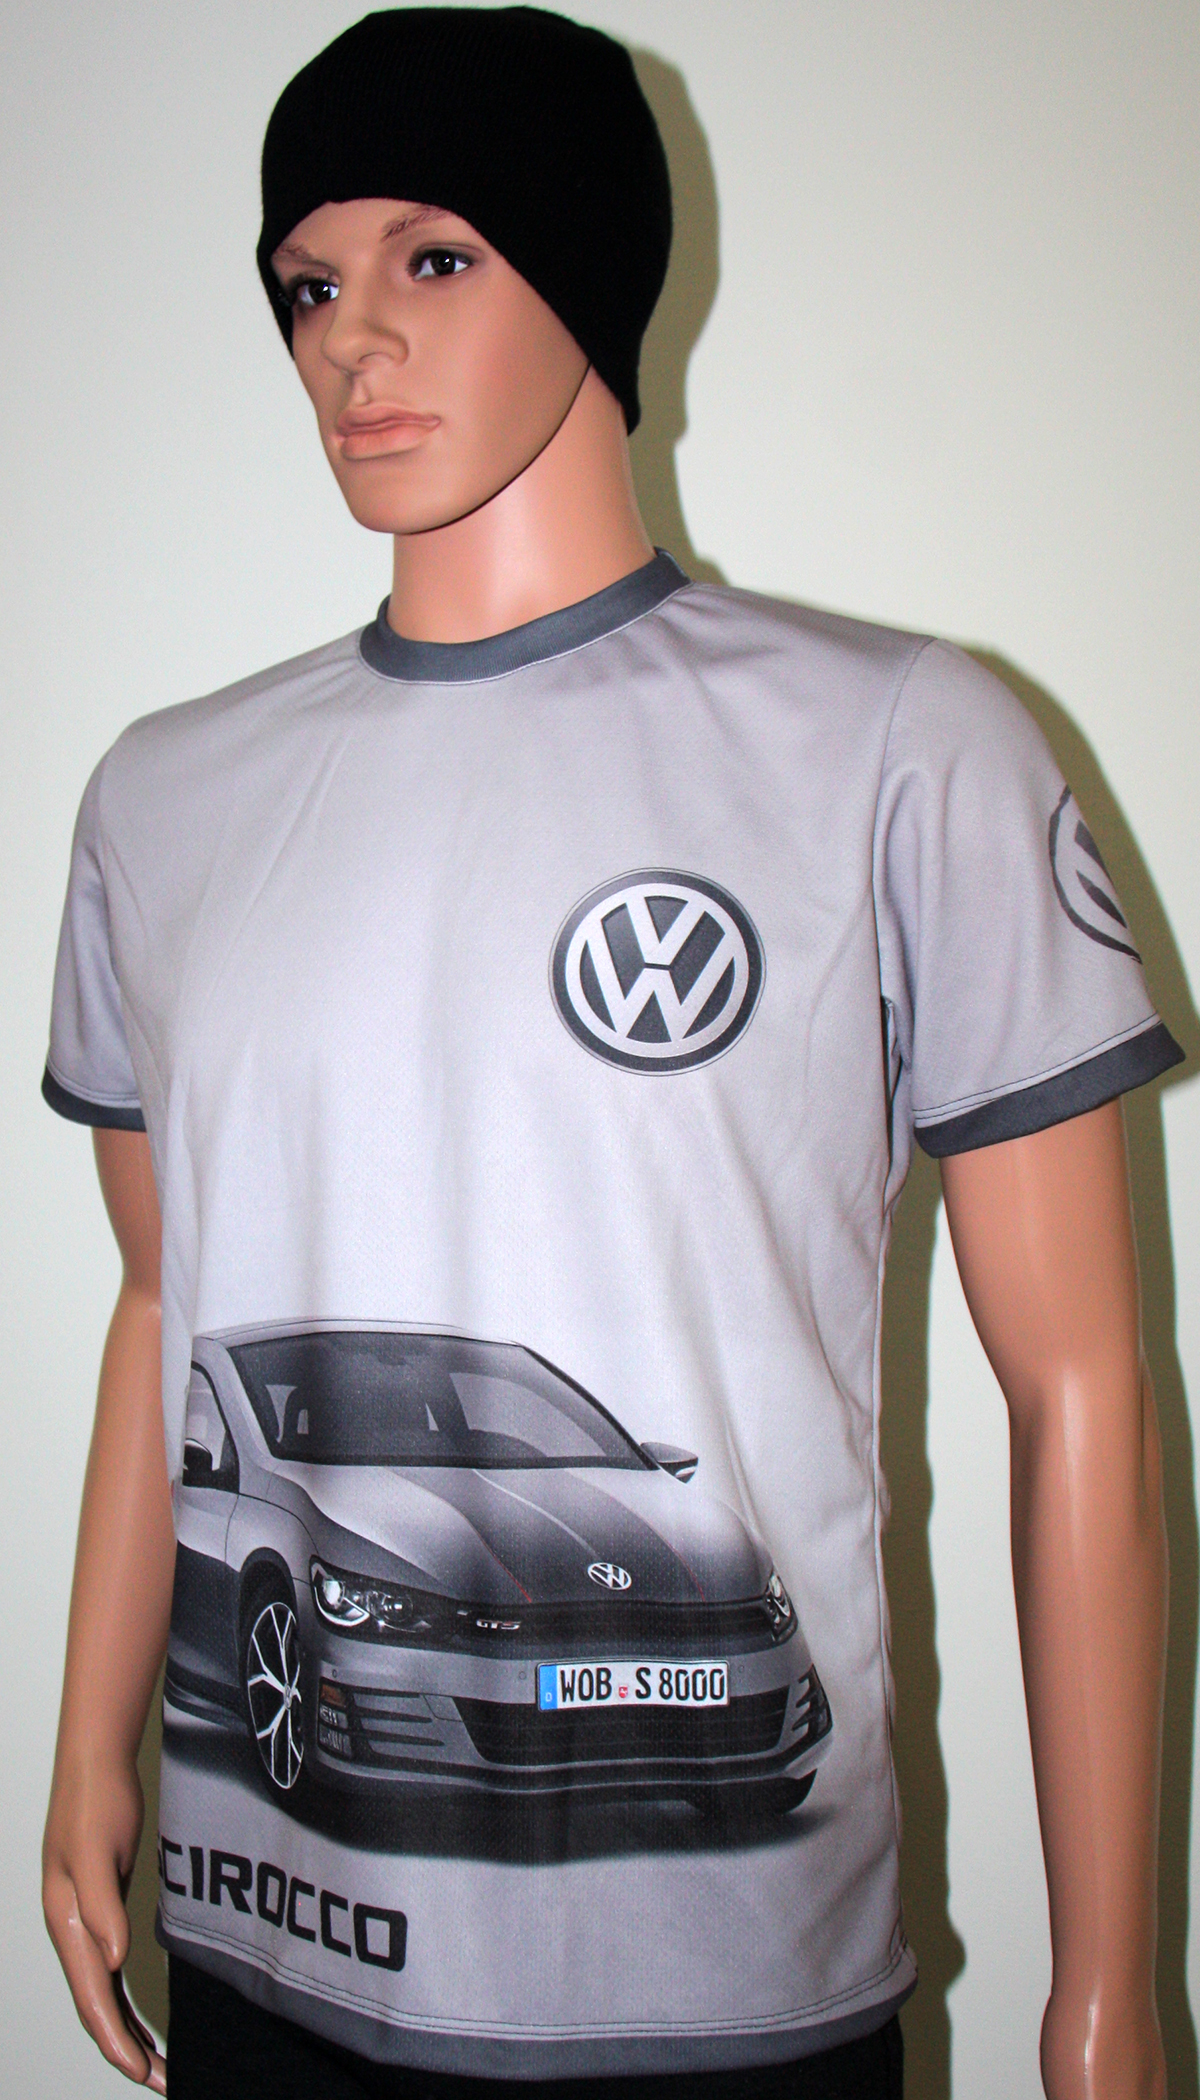 vw scirocco t shirt with logo and all over printed picture t shirts with all kind of auto. Black Bedroom Furniture Sets. Home Design Ideas